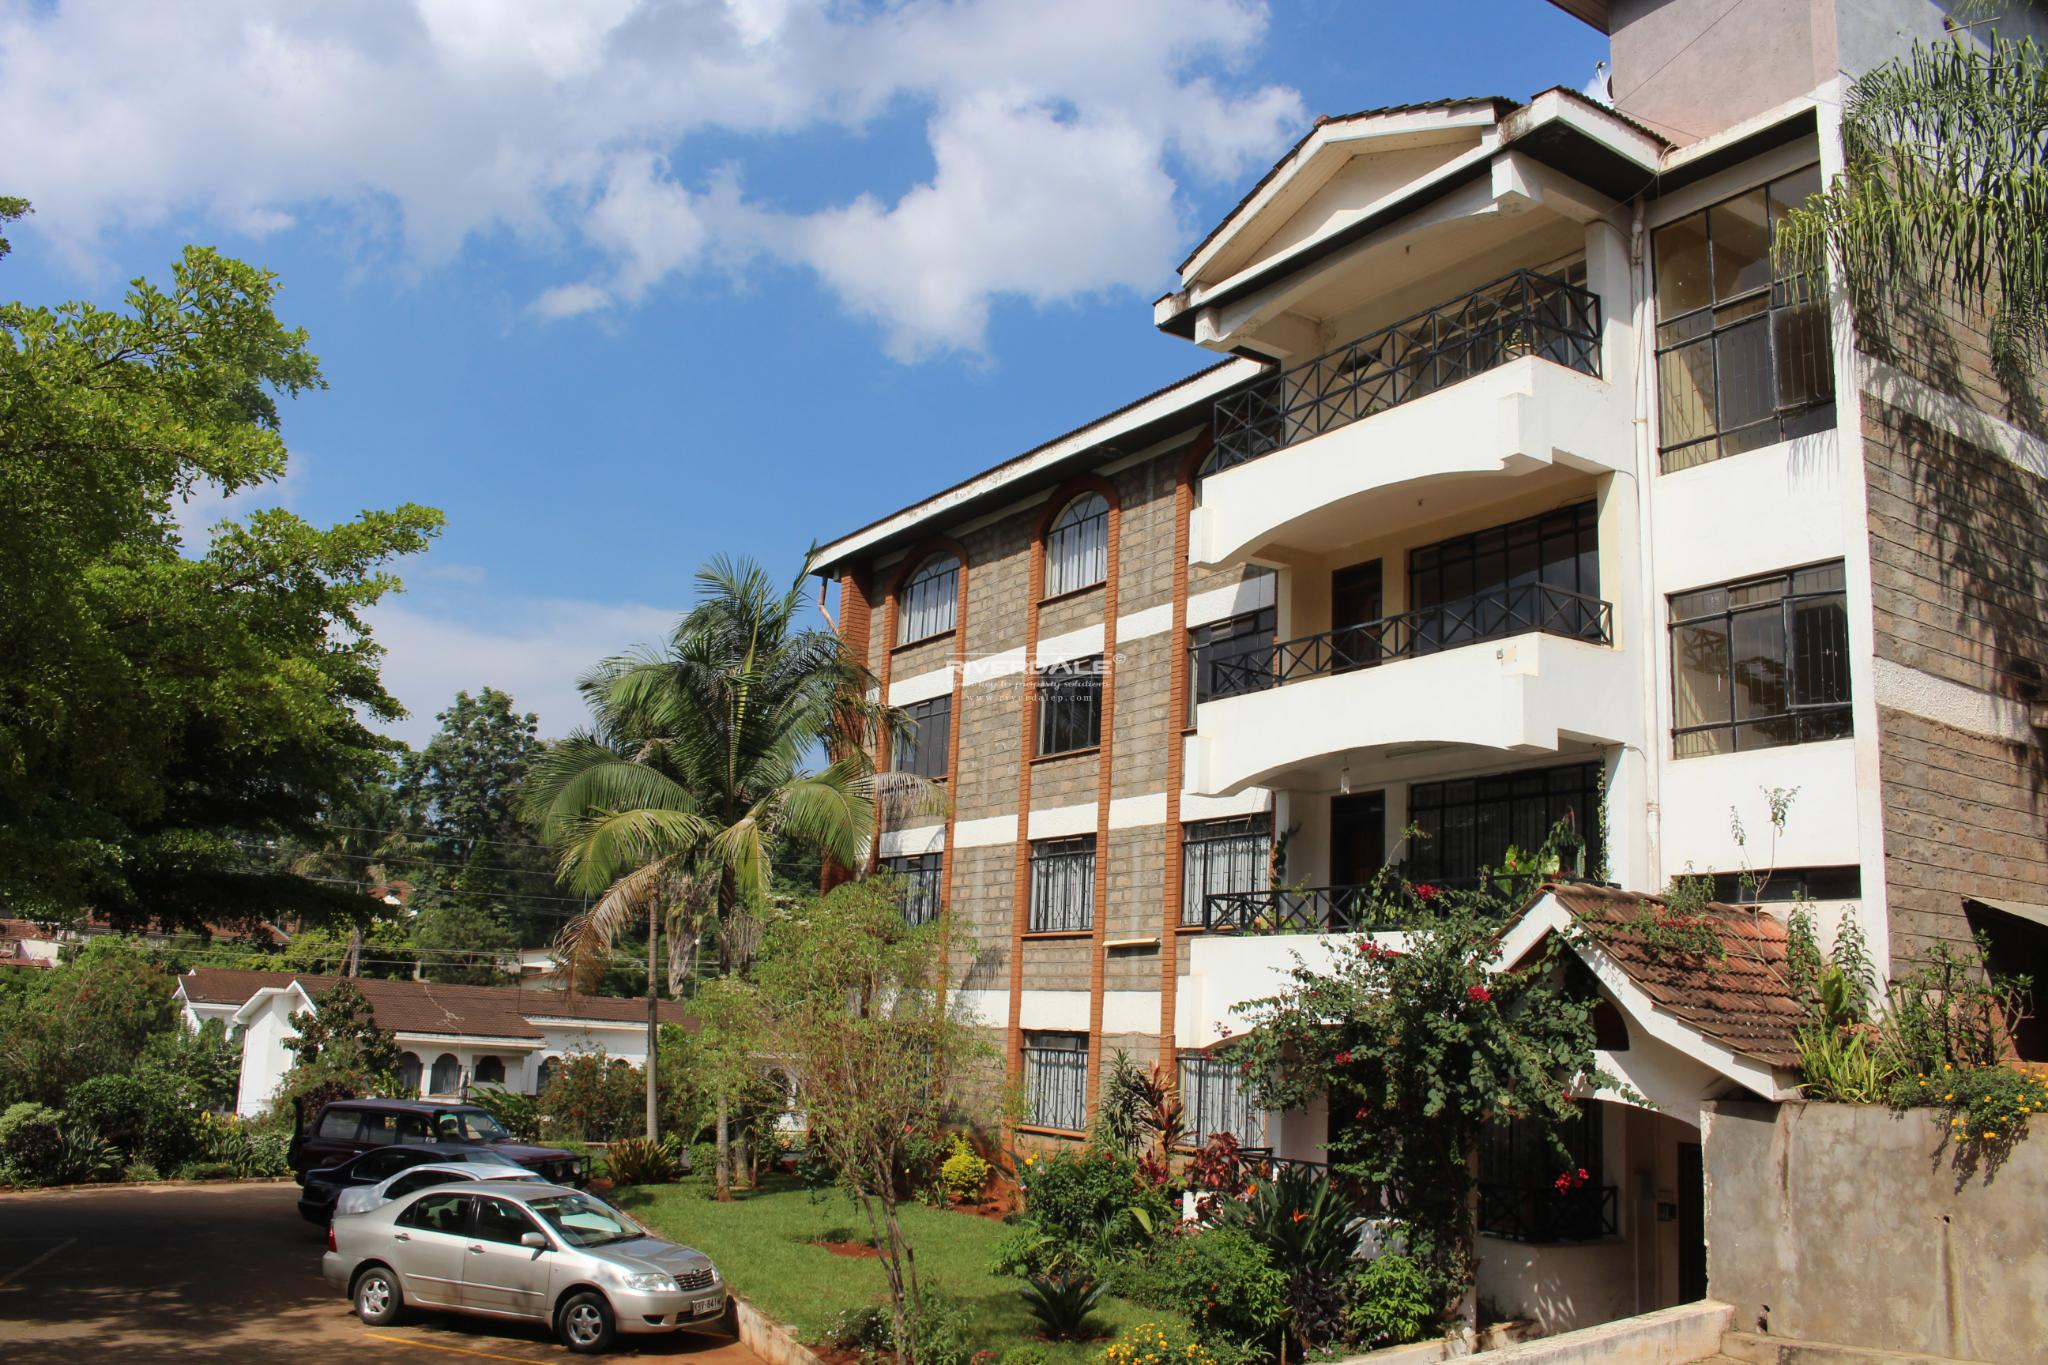 Marvellous 4 Bedroom Apartments In Brookside Drive For Sale